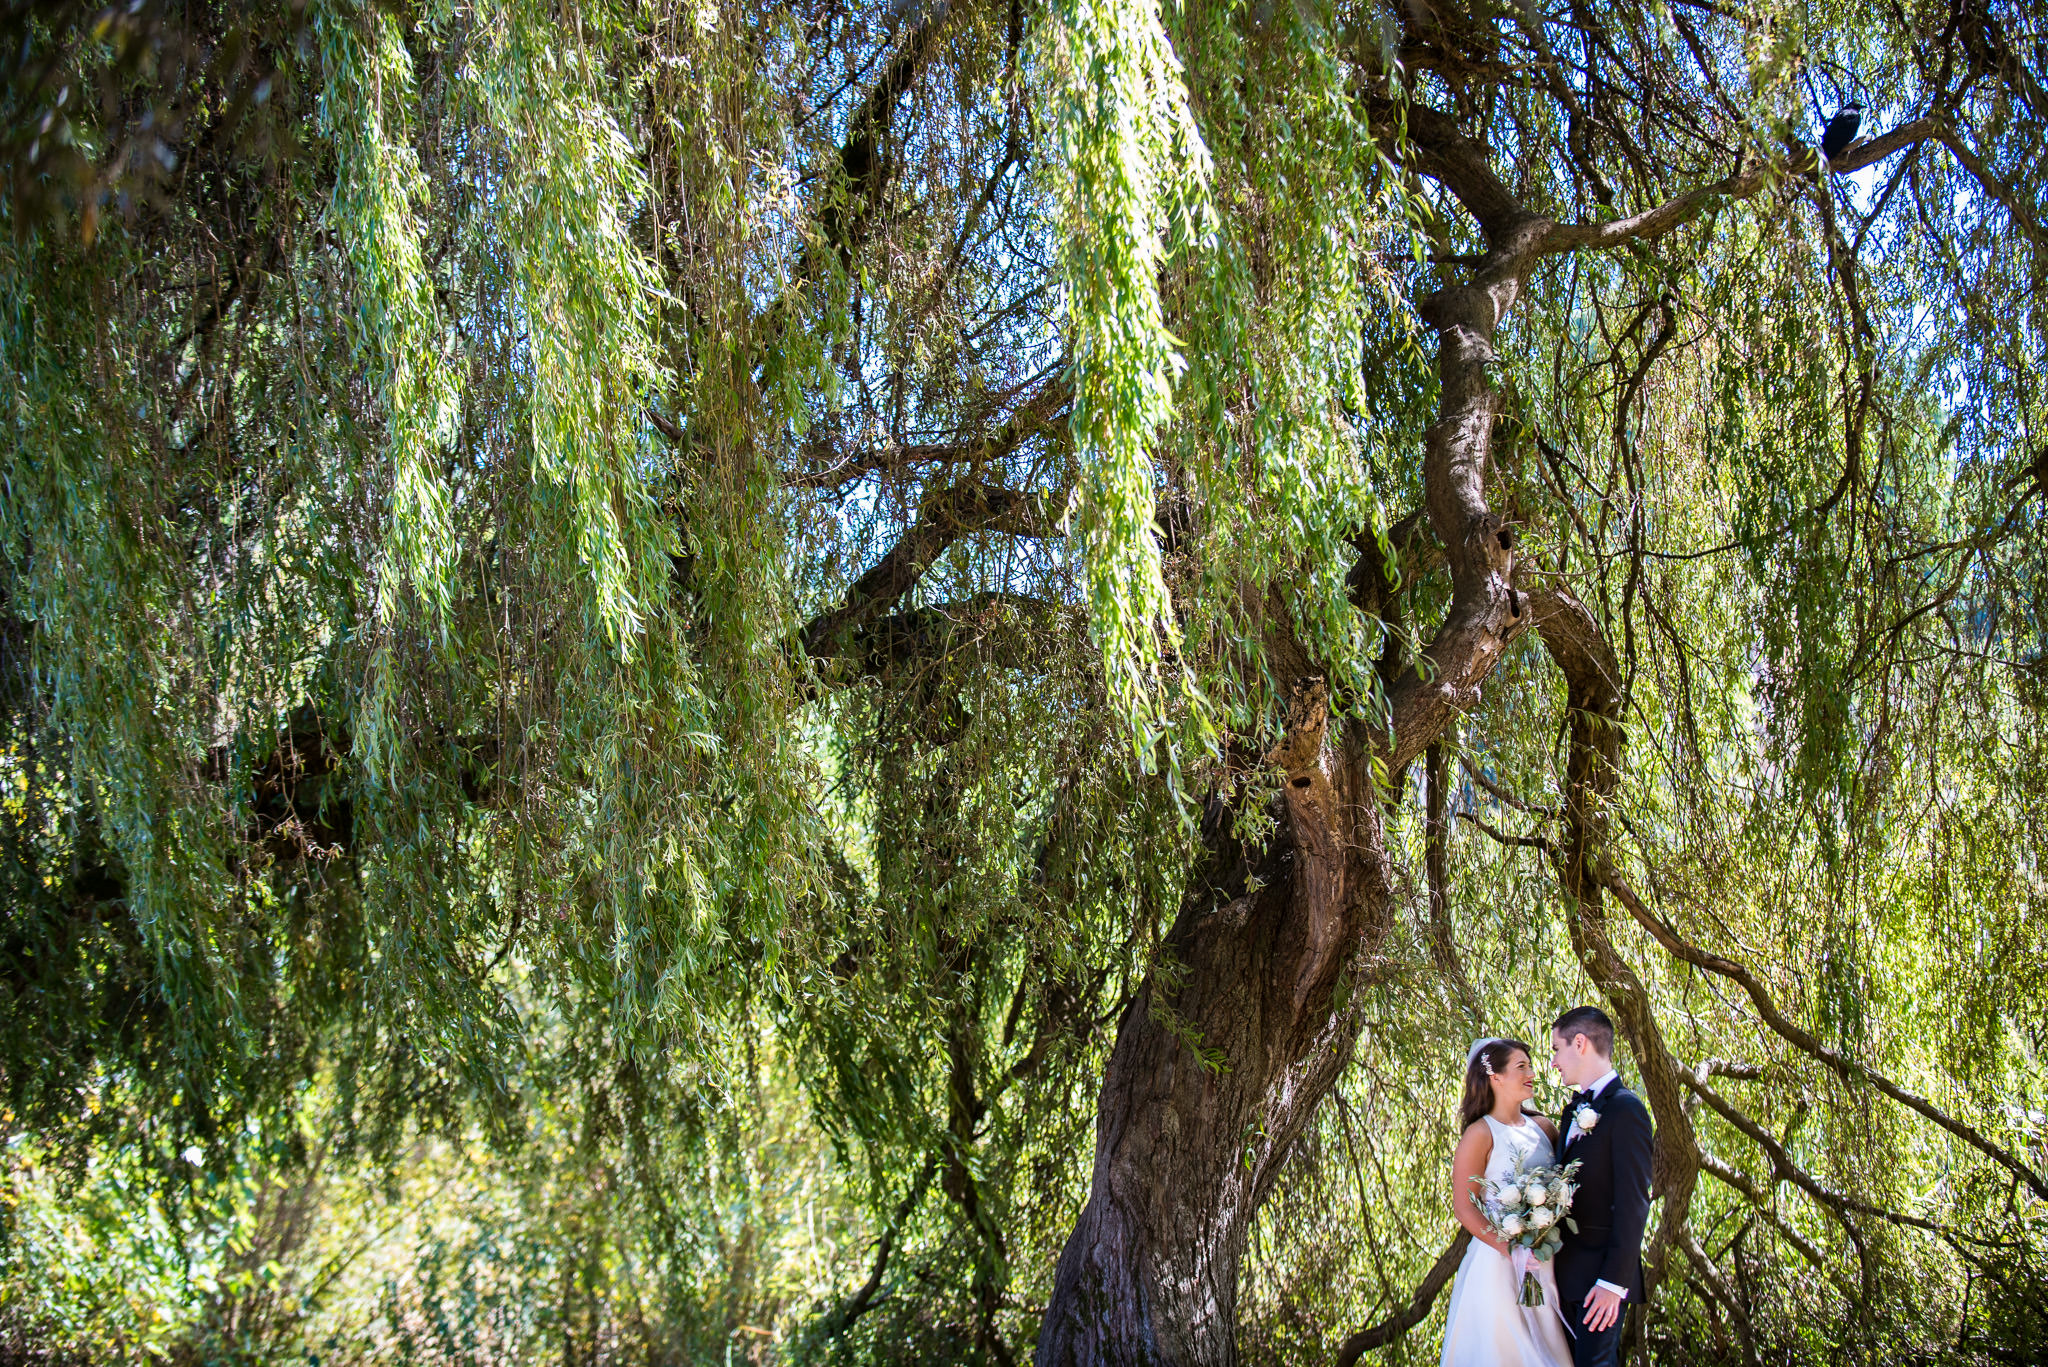 ubc-rose-garden-wedding-sage-bistro-wedding-bc-wedding-photographer-24.jpg